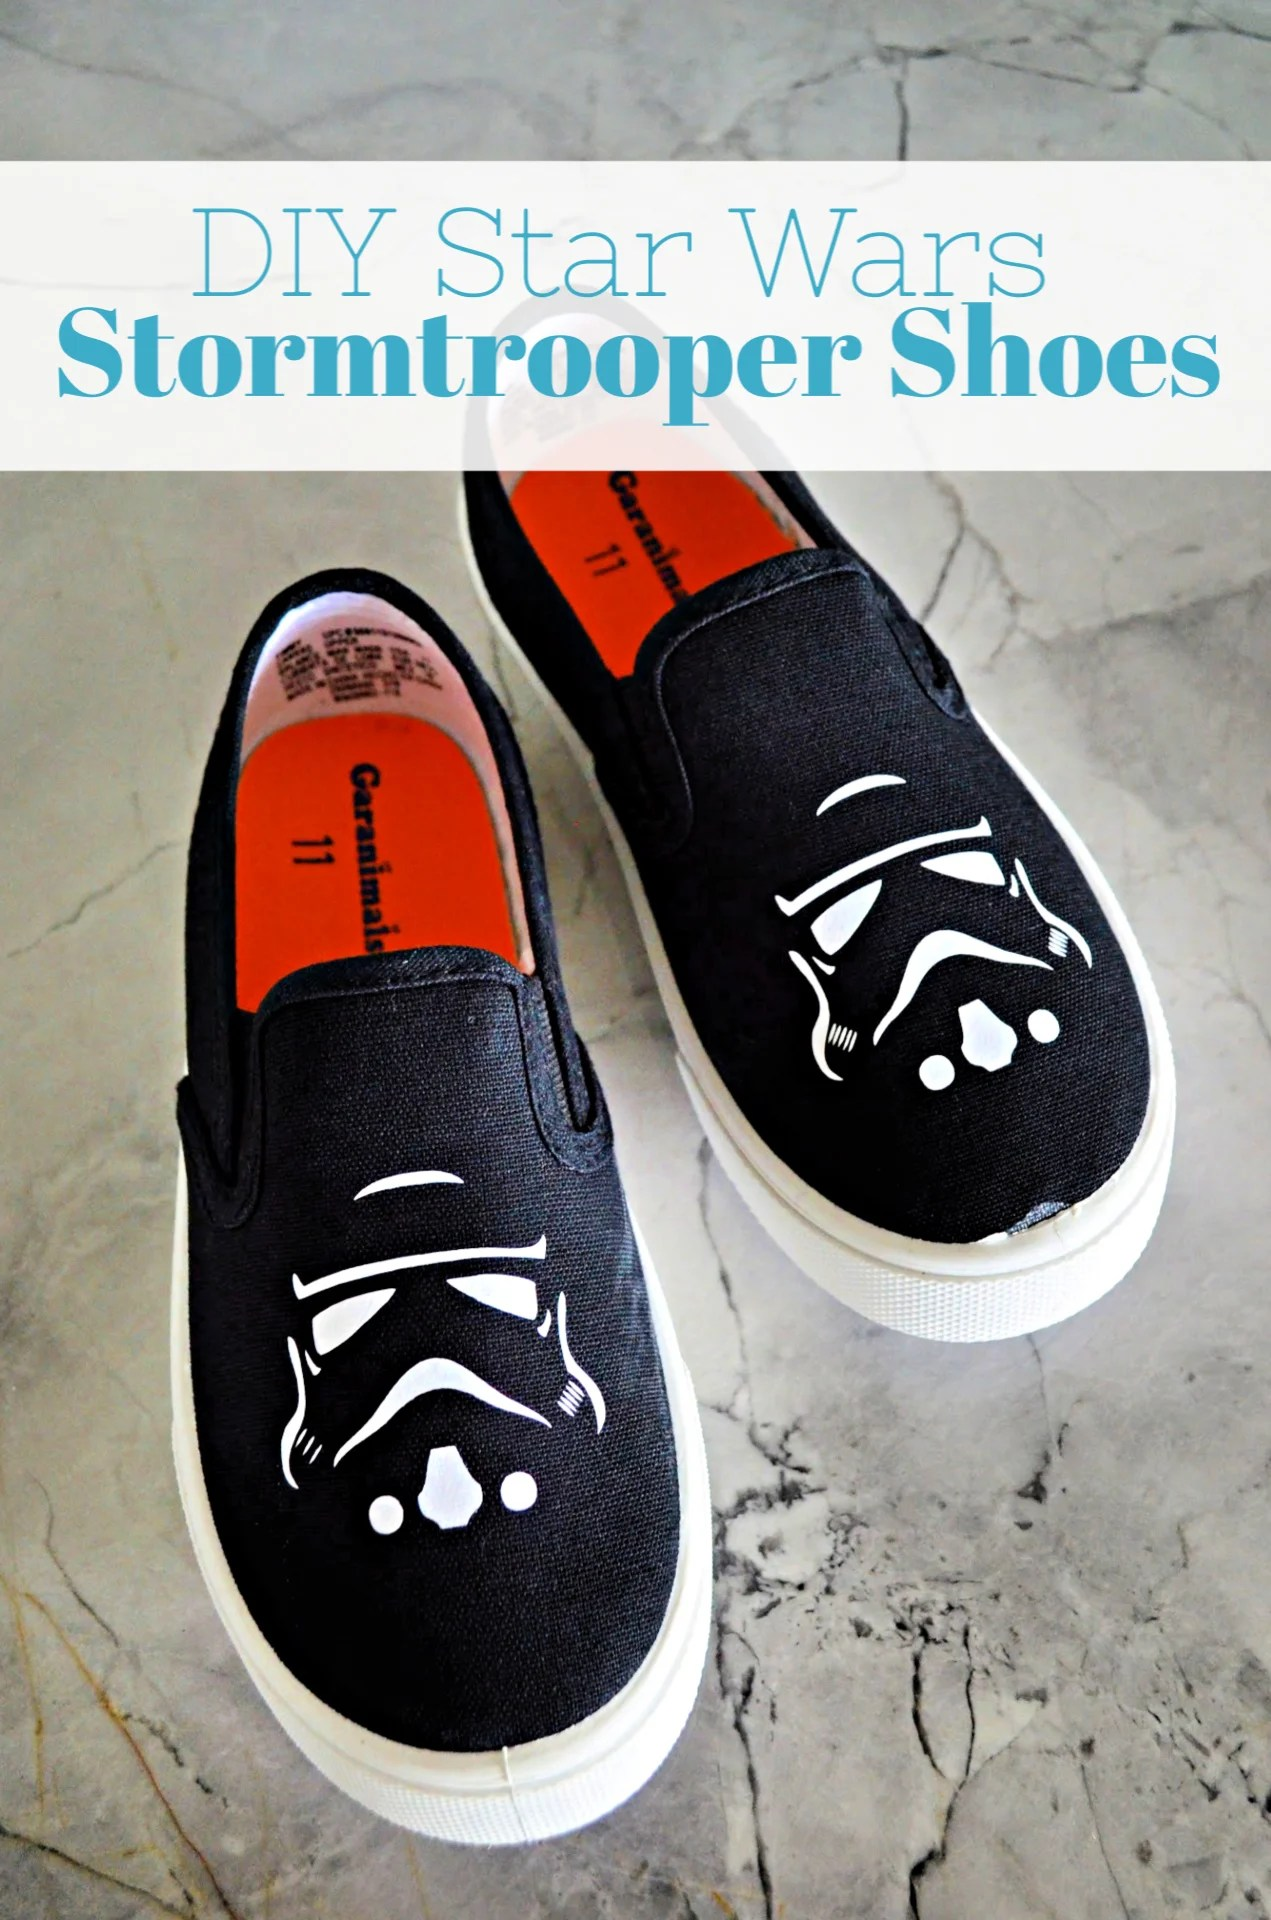 DIY Star Wars Stormtrooper Shoes